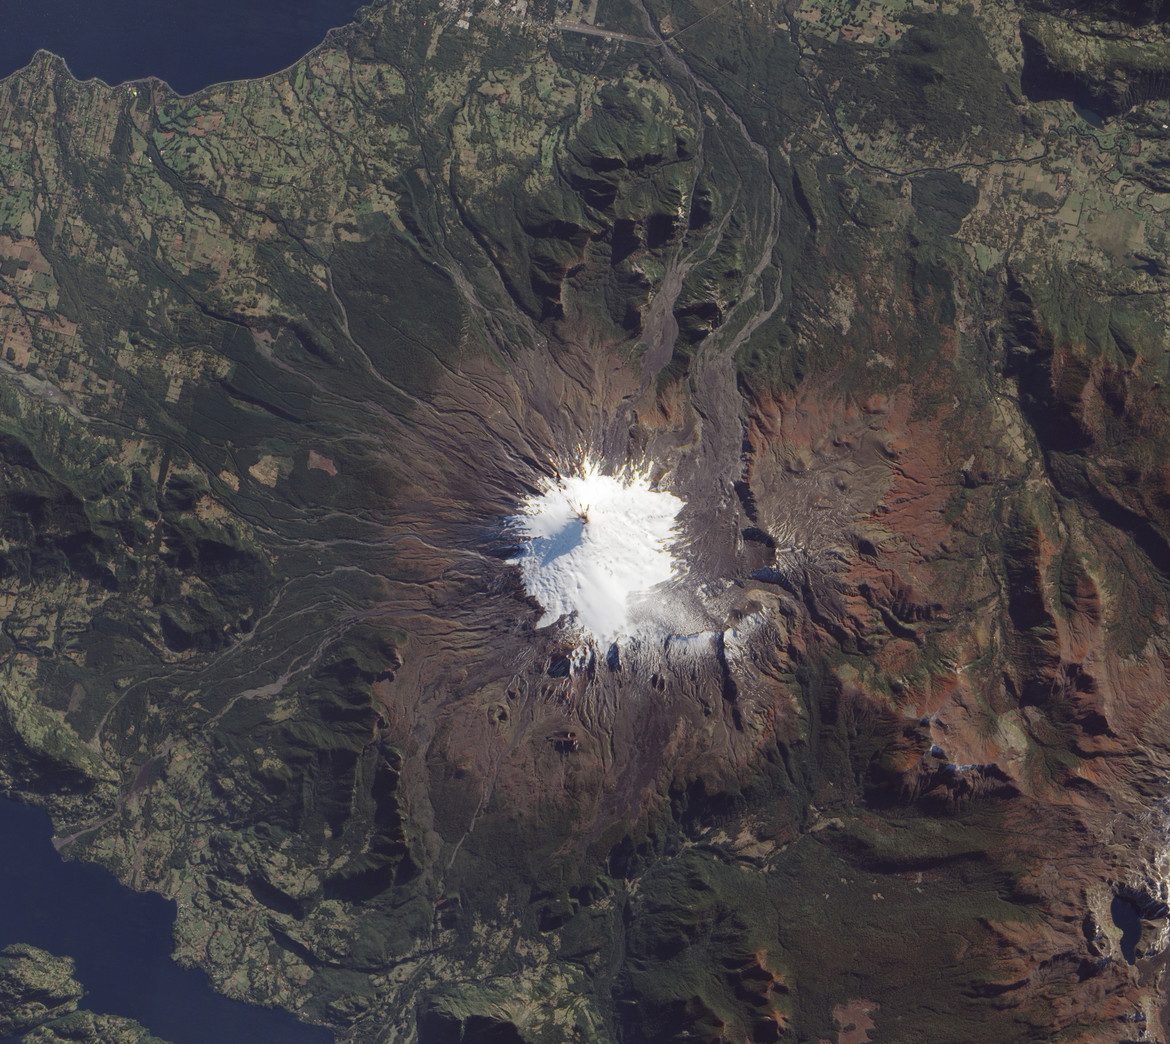 The Villarrica volcano, imaged by the EO-1 satellite. Credit: Jesse Allen and Robert Simmon, using EO-1 ALI data provided courtesy of the NASA EO-1 team